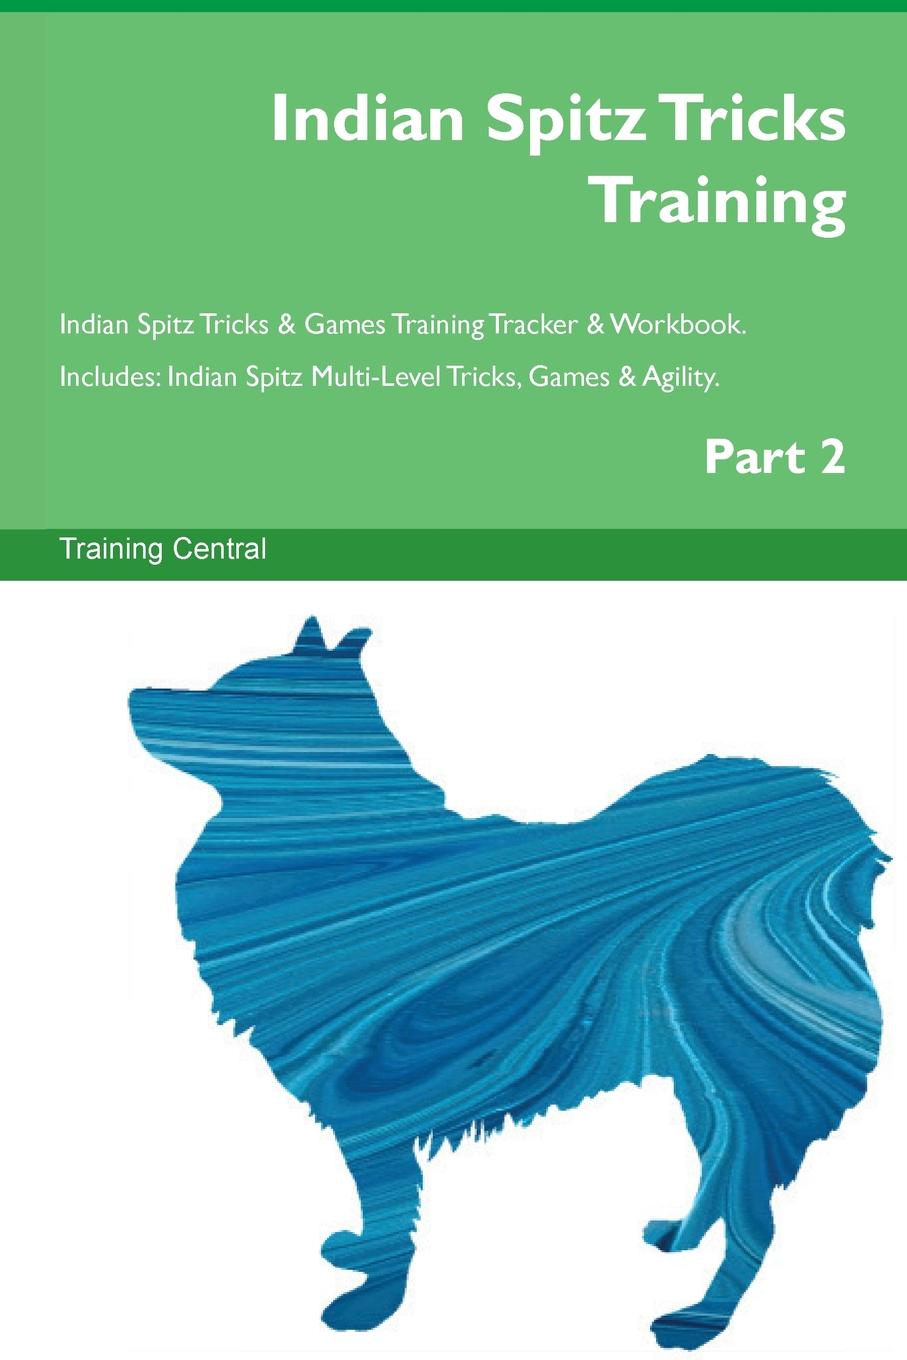 Training Central Indian Spitz Tricks Training Indian Spitz Tricks . Games Training Tracker . Workbook. Includes. Indian Spitz Multi-Level Tricks, Games . Agility. Part 2 elizabeth rae kovar finding om an indian journey of rickshaws chai chapattis gurus